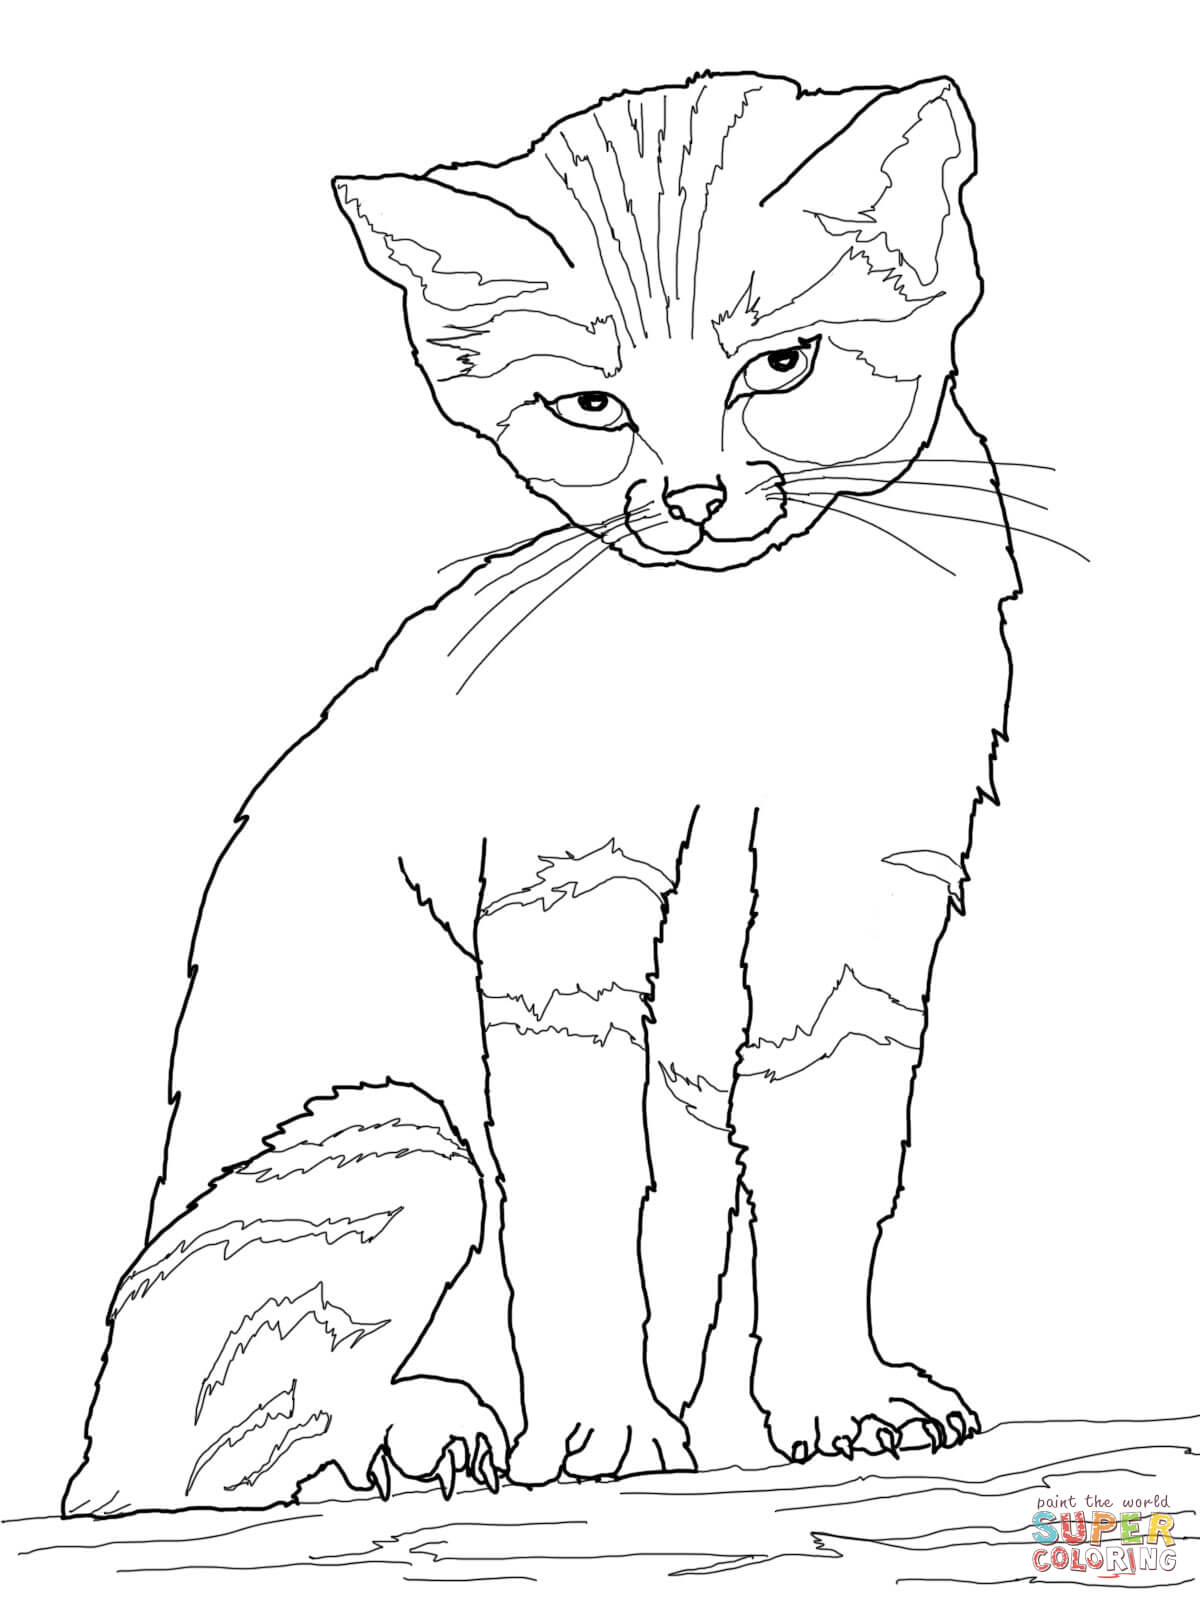 Sand Cat clipart #11, Download drawings